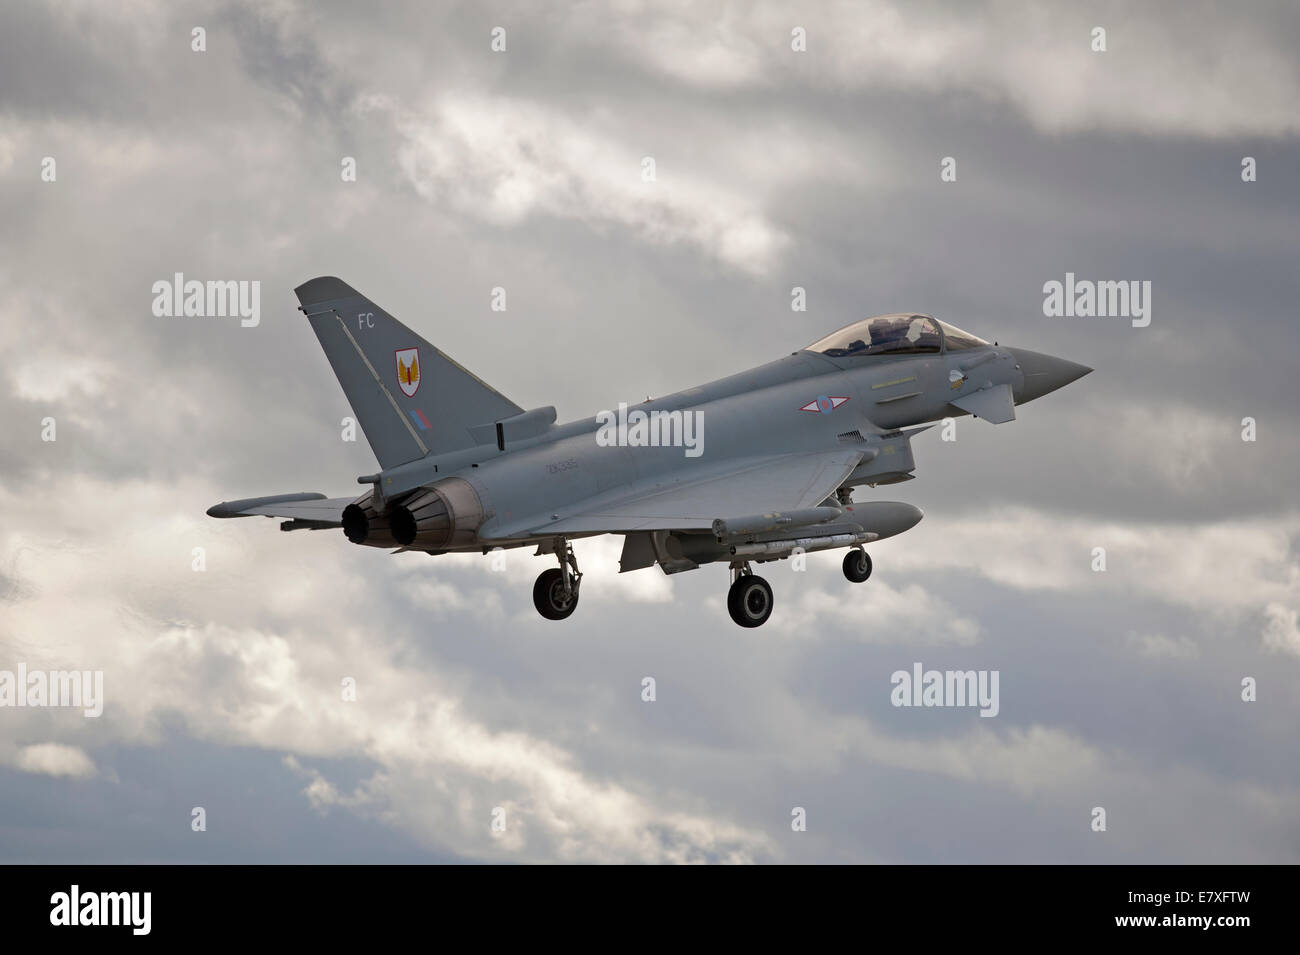 Eurofighter Typhoon FRG4 on approach to RAF Lossiemouth, Morayshire.  SCO 9131 - Stock Image